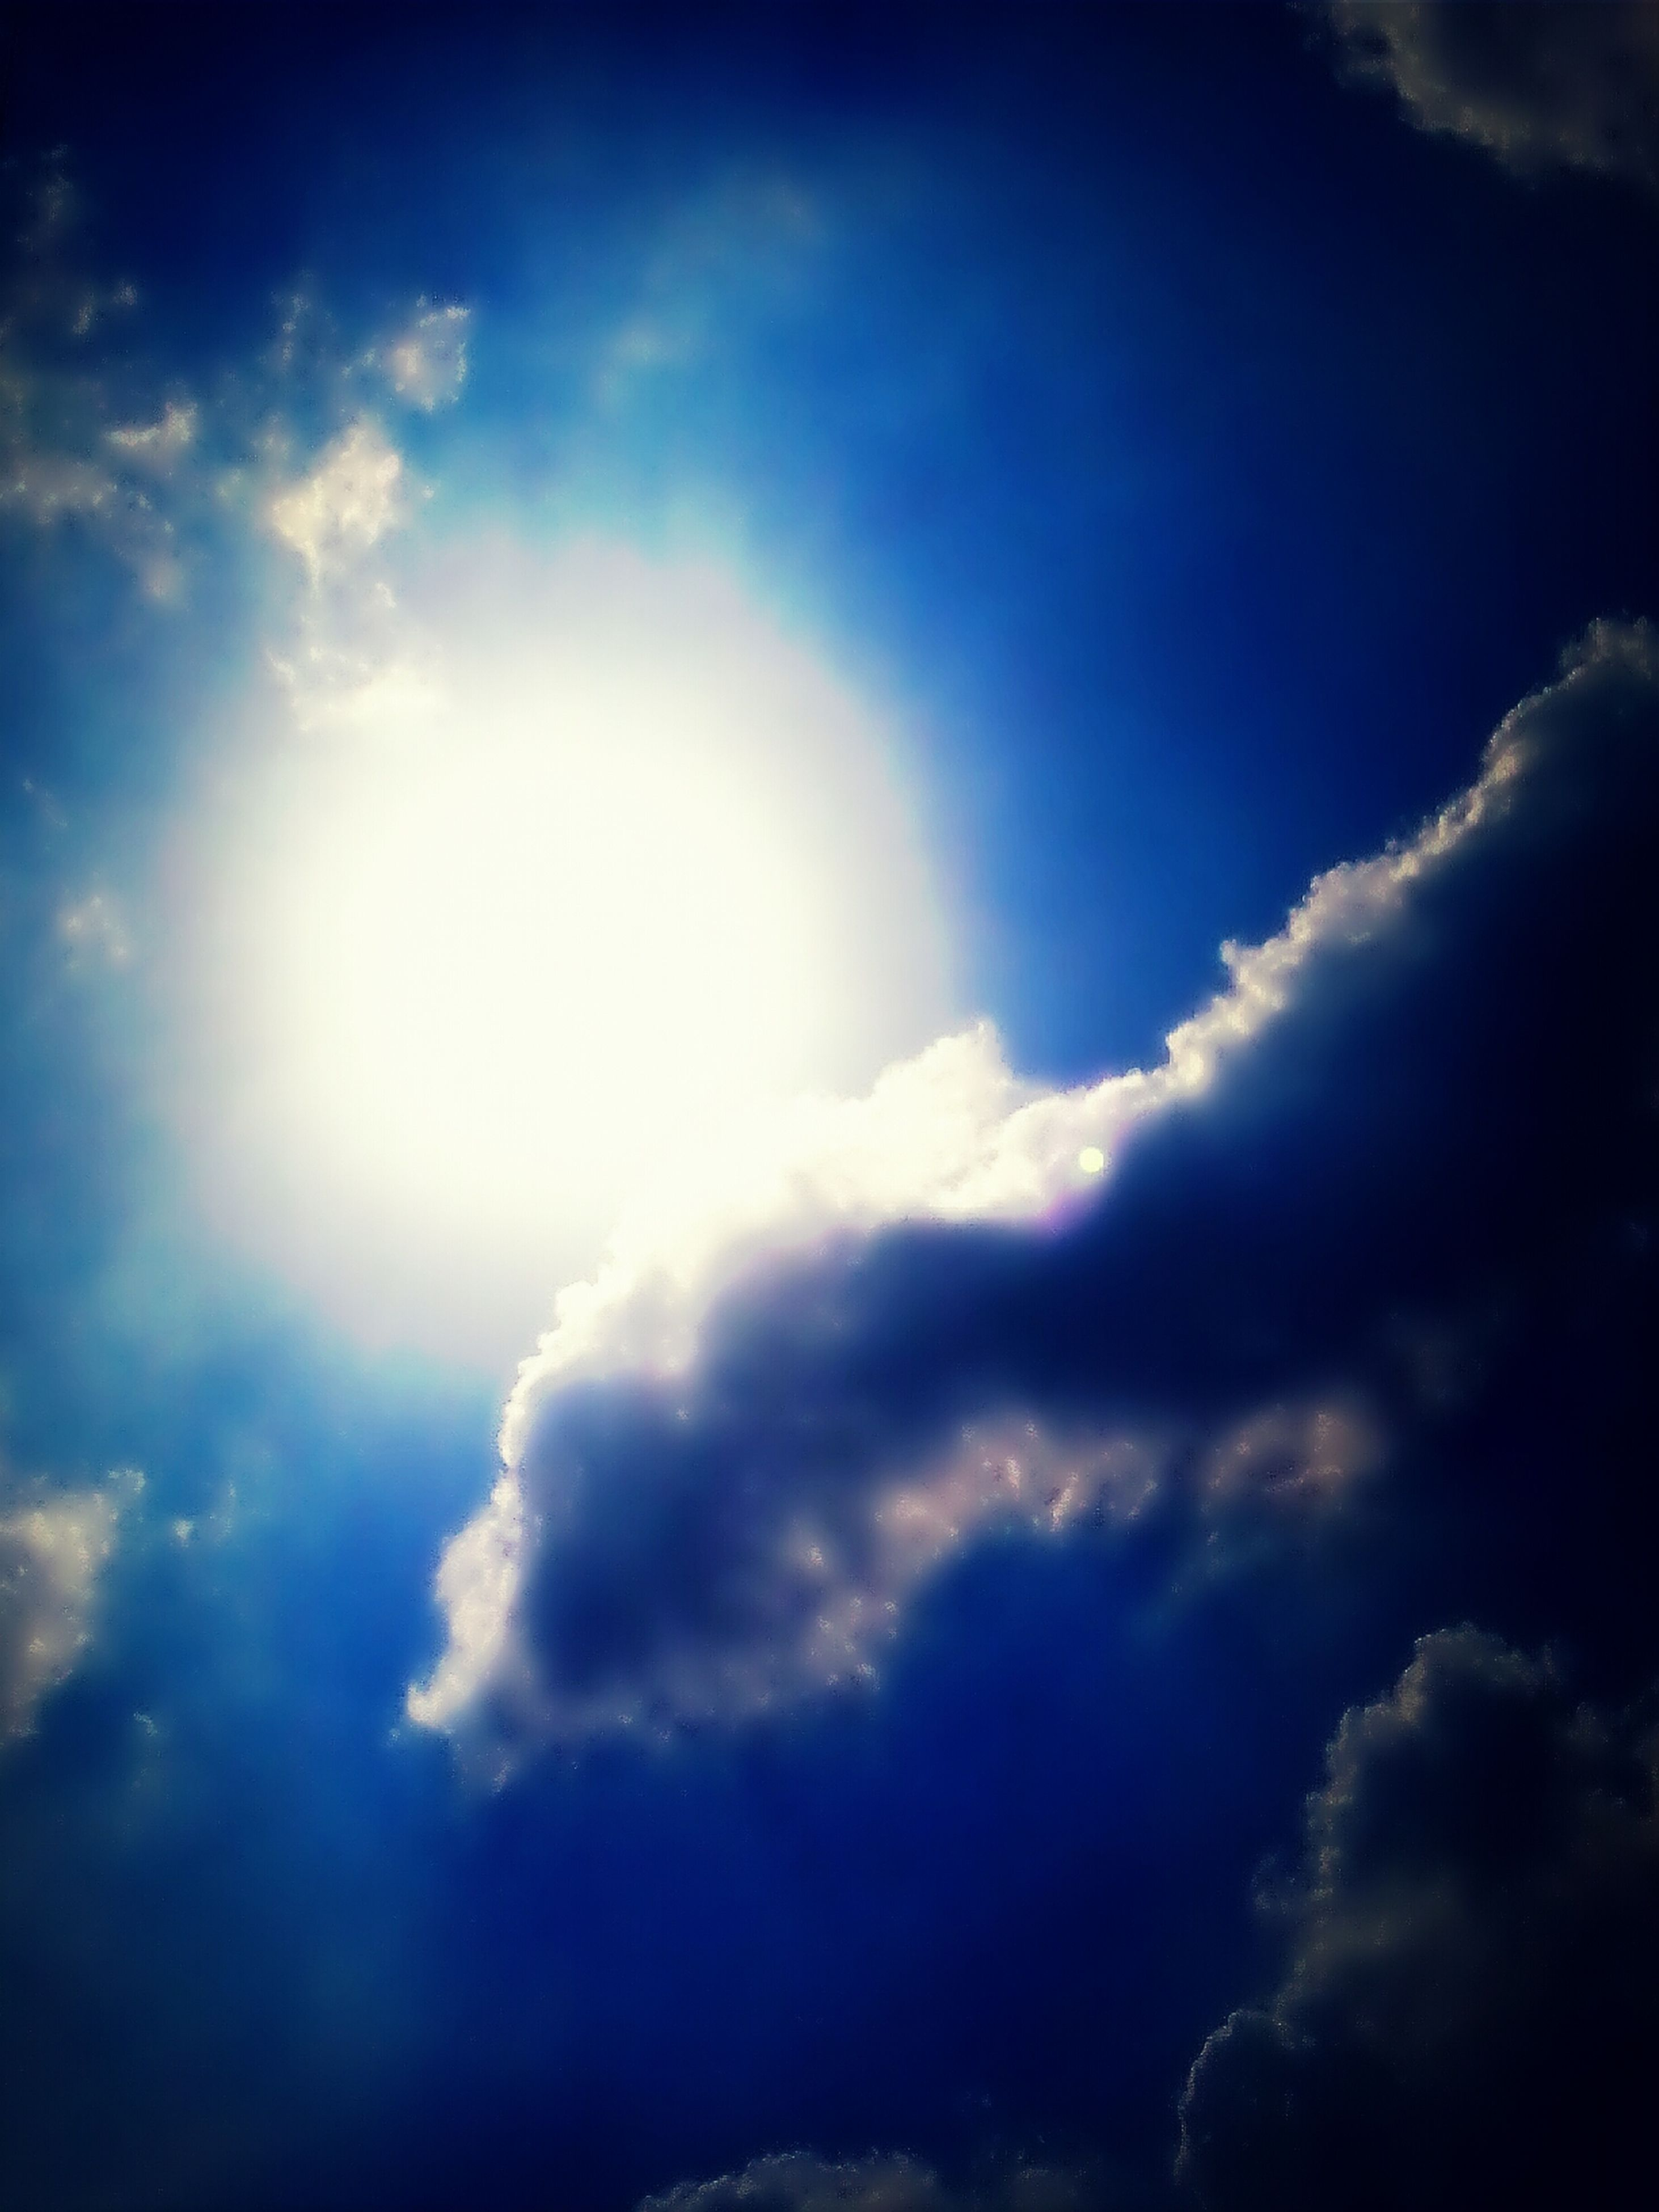 sky, cloud - sky, low angle view, sky only, beauty in nature, tranquility, sunbeam, sun, scenics, cloudy, cloudscape, nature, tranquil scene, cloud, sunlight, blue, idyllic, weather, outdoors, day